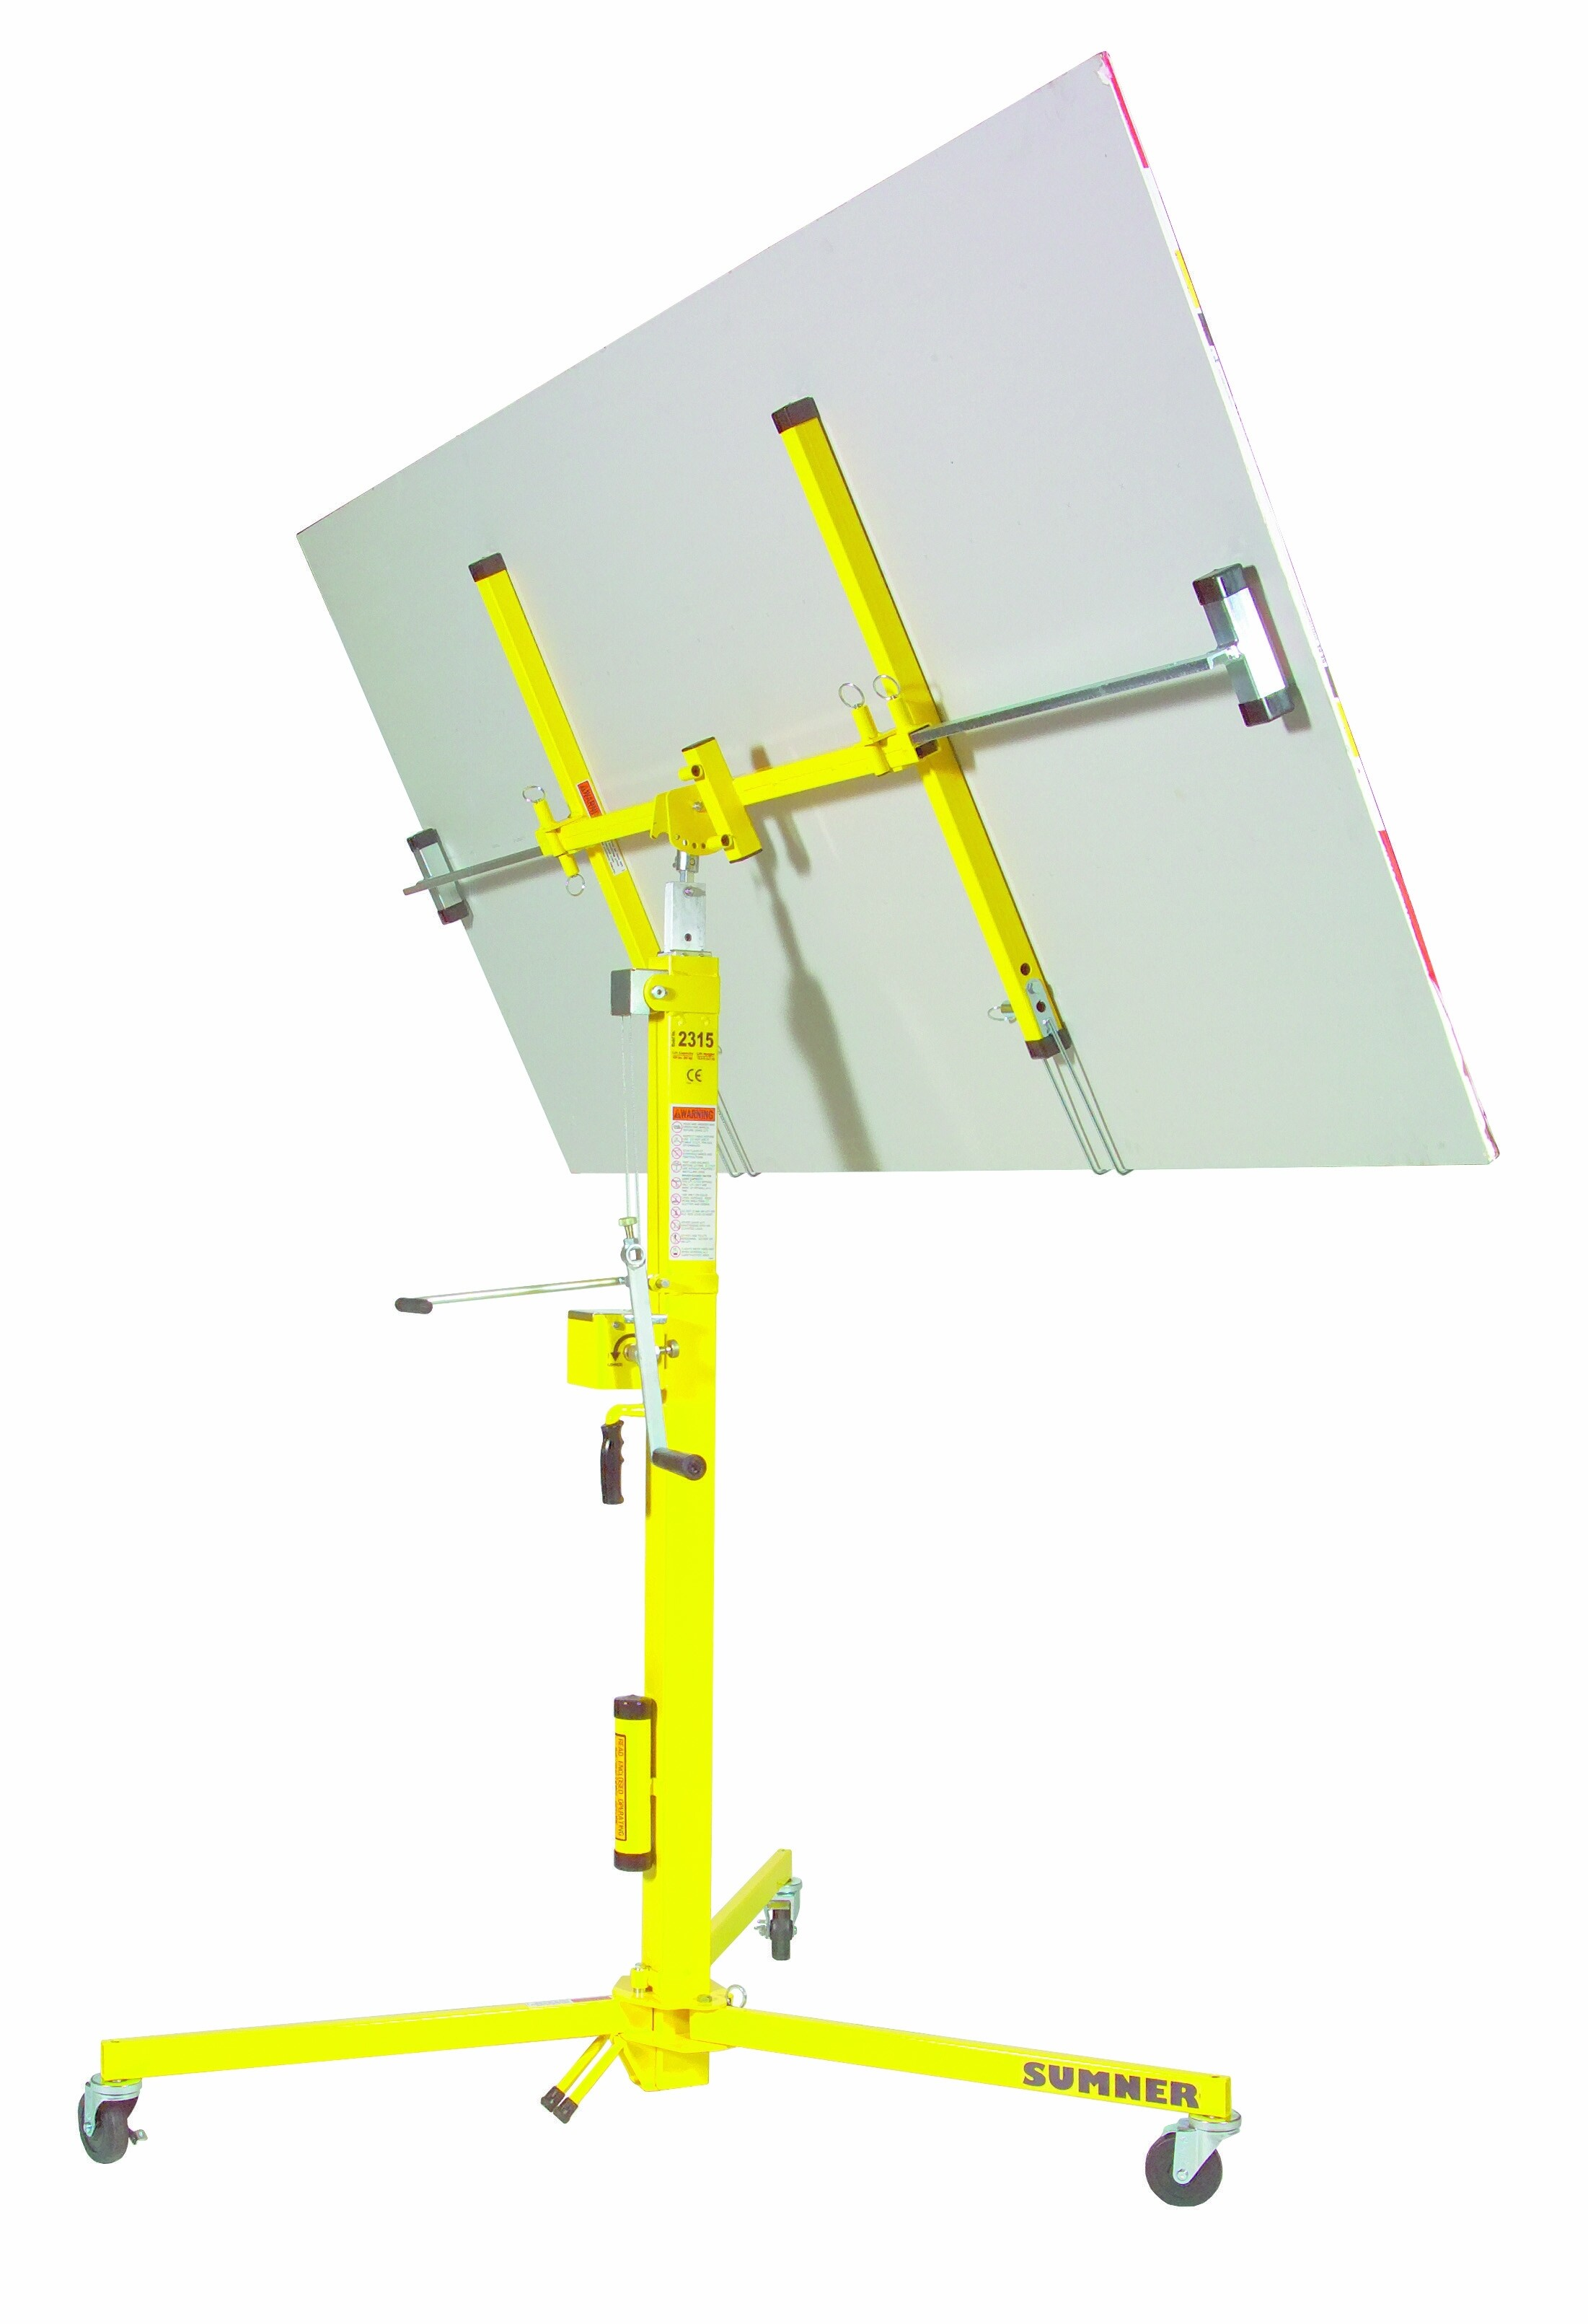 Plasterboard / Dry Wall Lifter